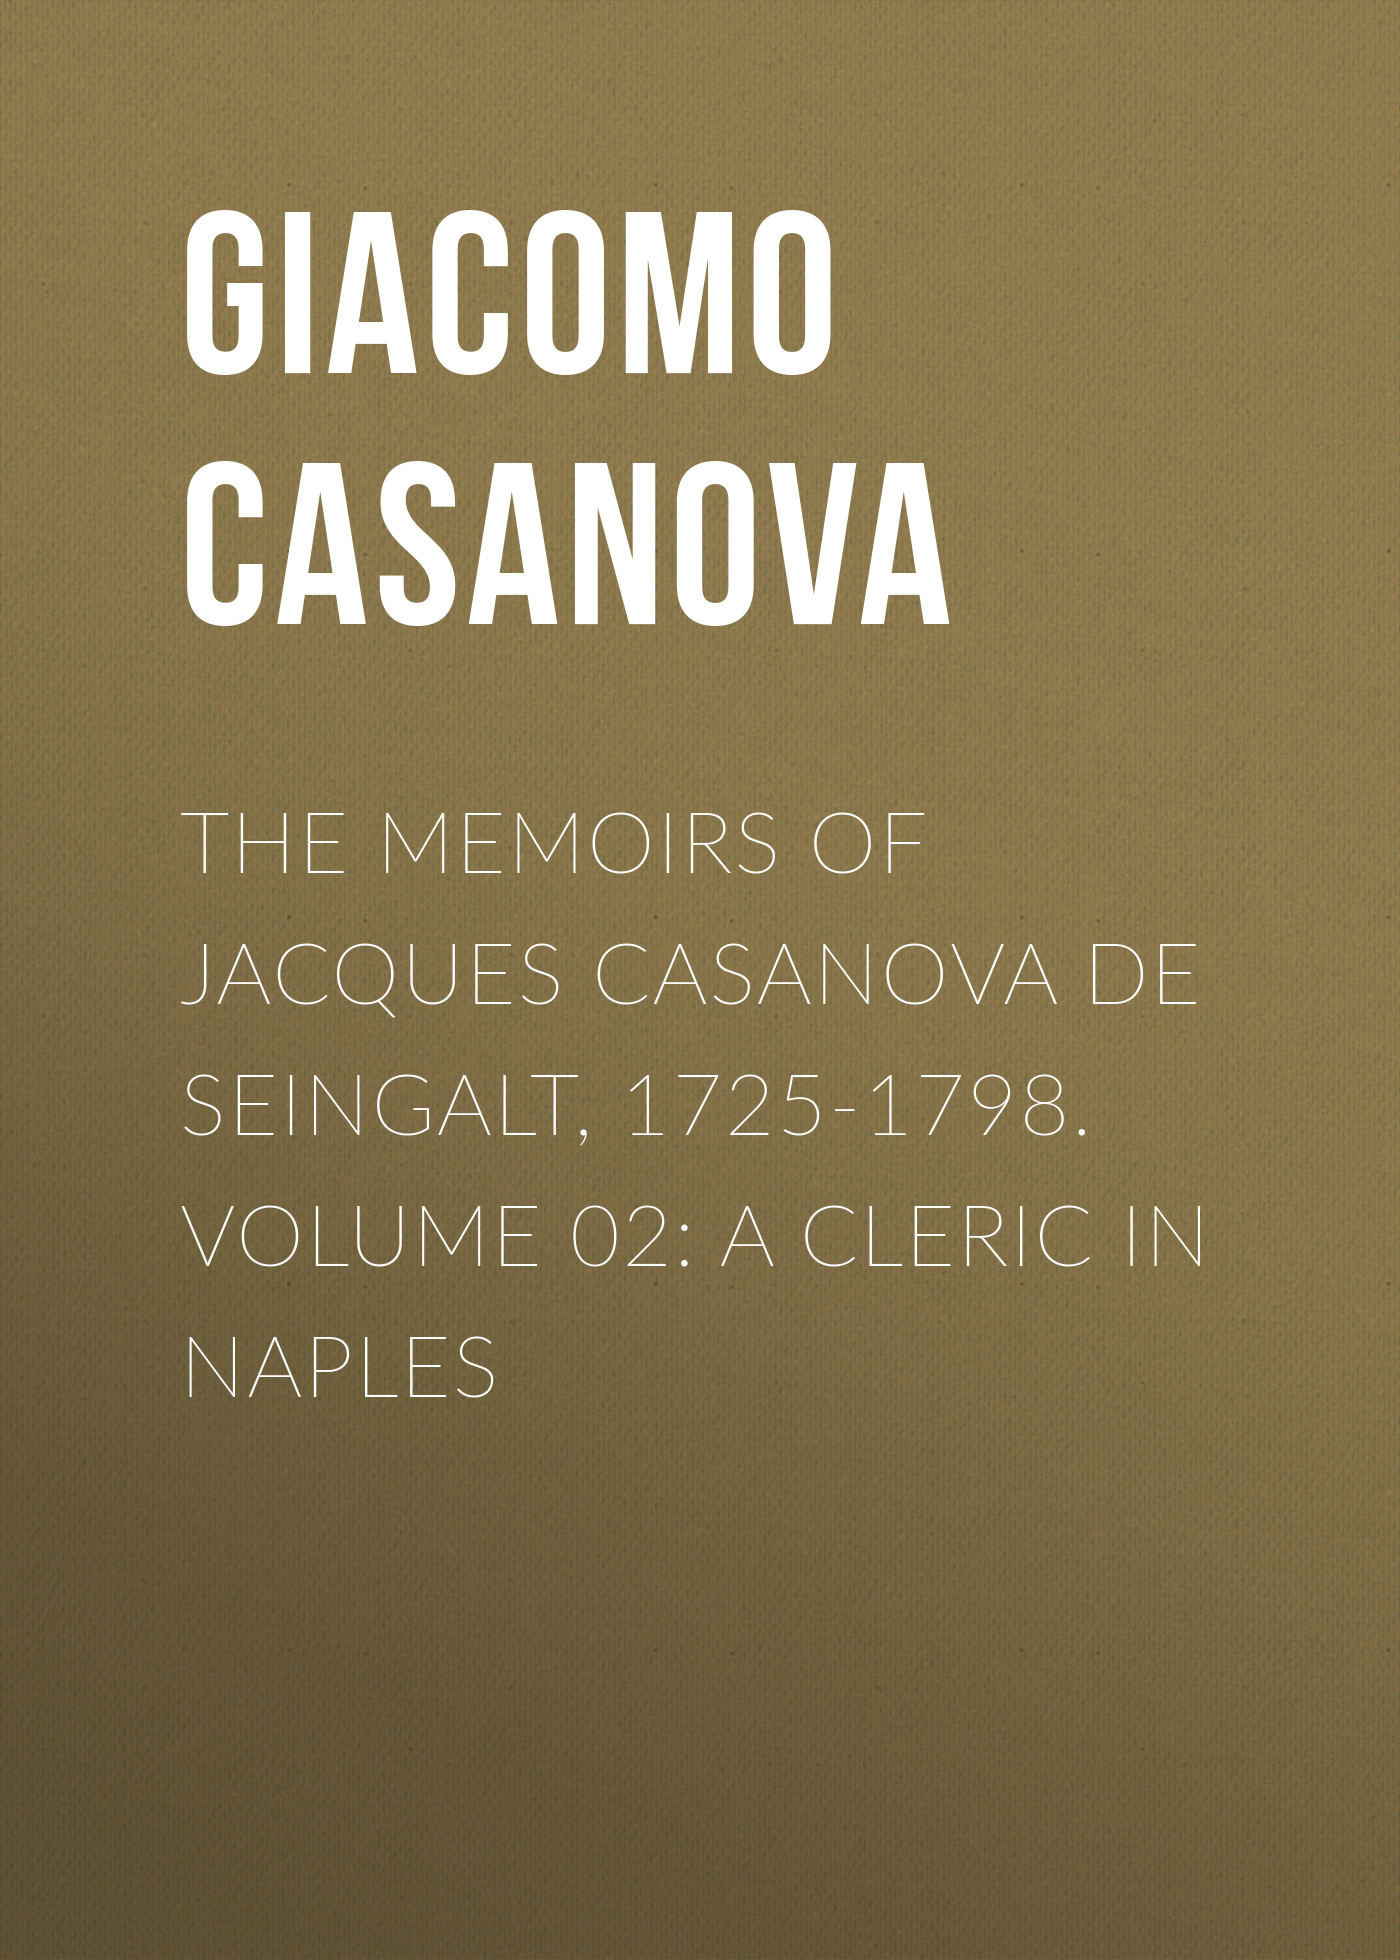 Giacomo Casanova The Memoirs of Jacques Casanova de Seingalt, 1725-1798. Volume 02: a Cleric in Naples caparezza naples